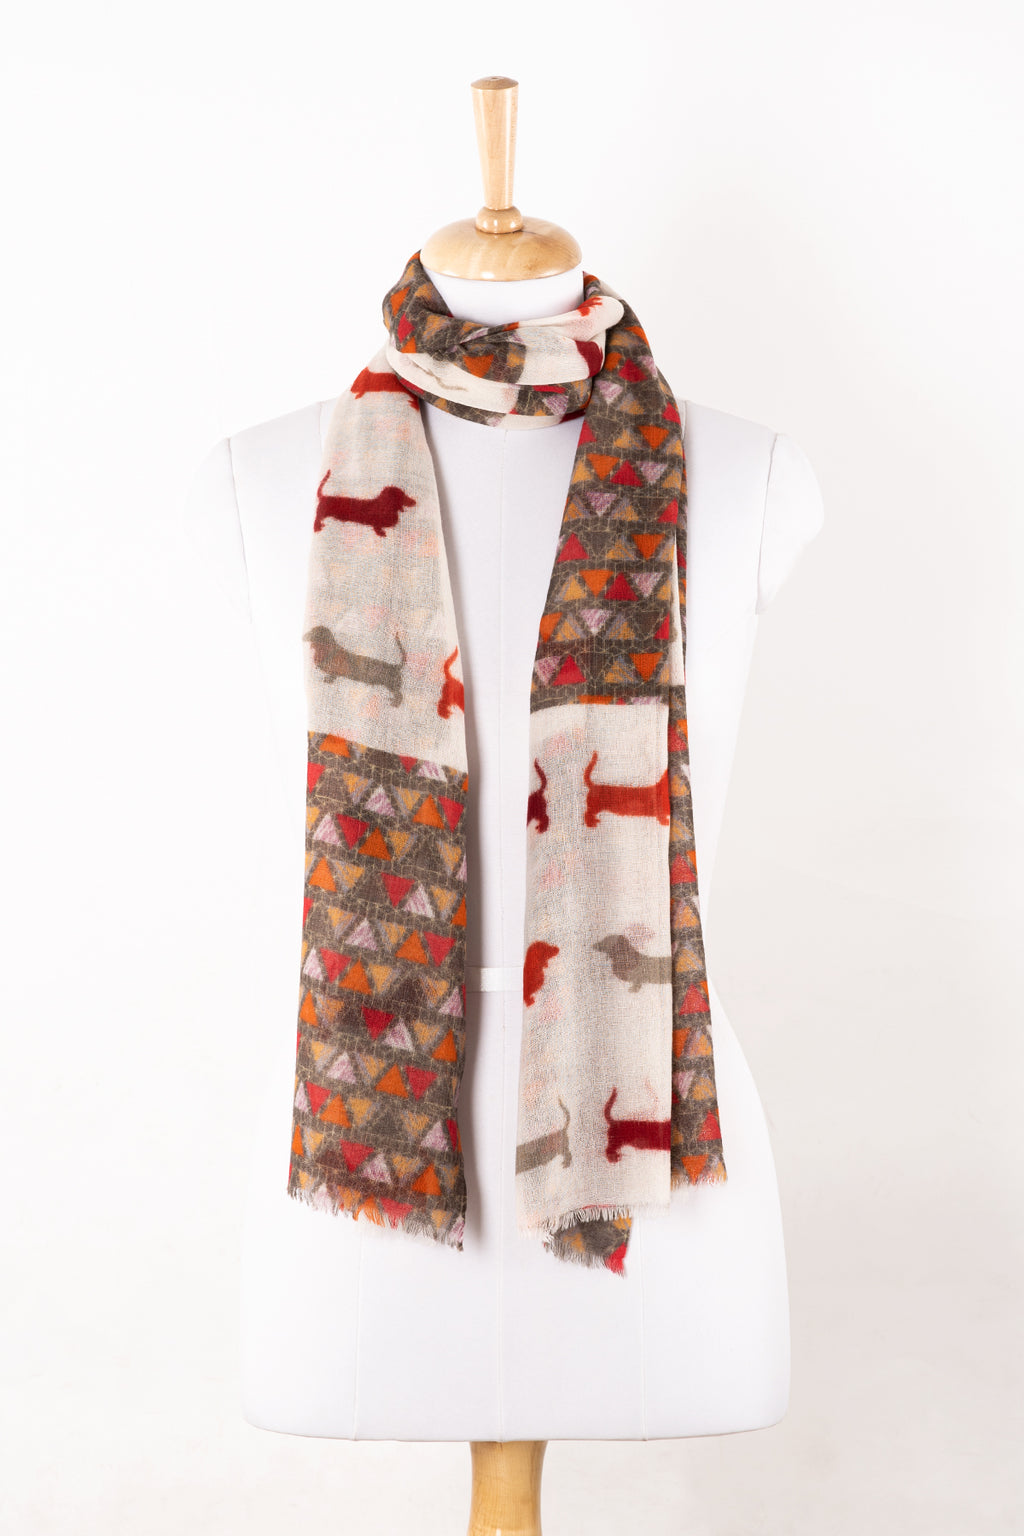 Dog and Triangle Patch Print Merino Wool Scarf - White